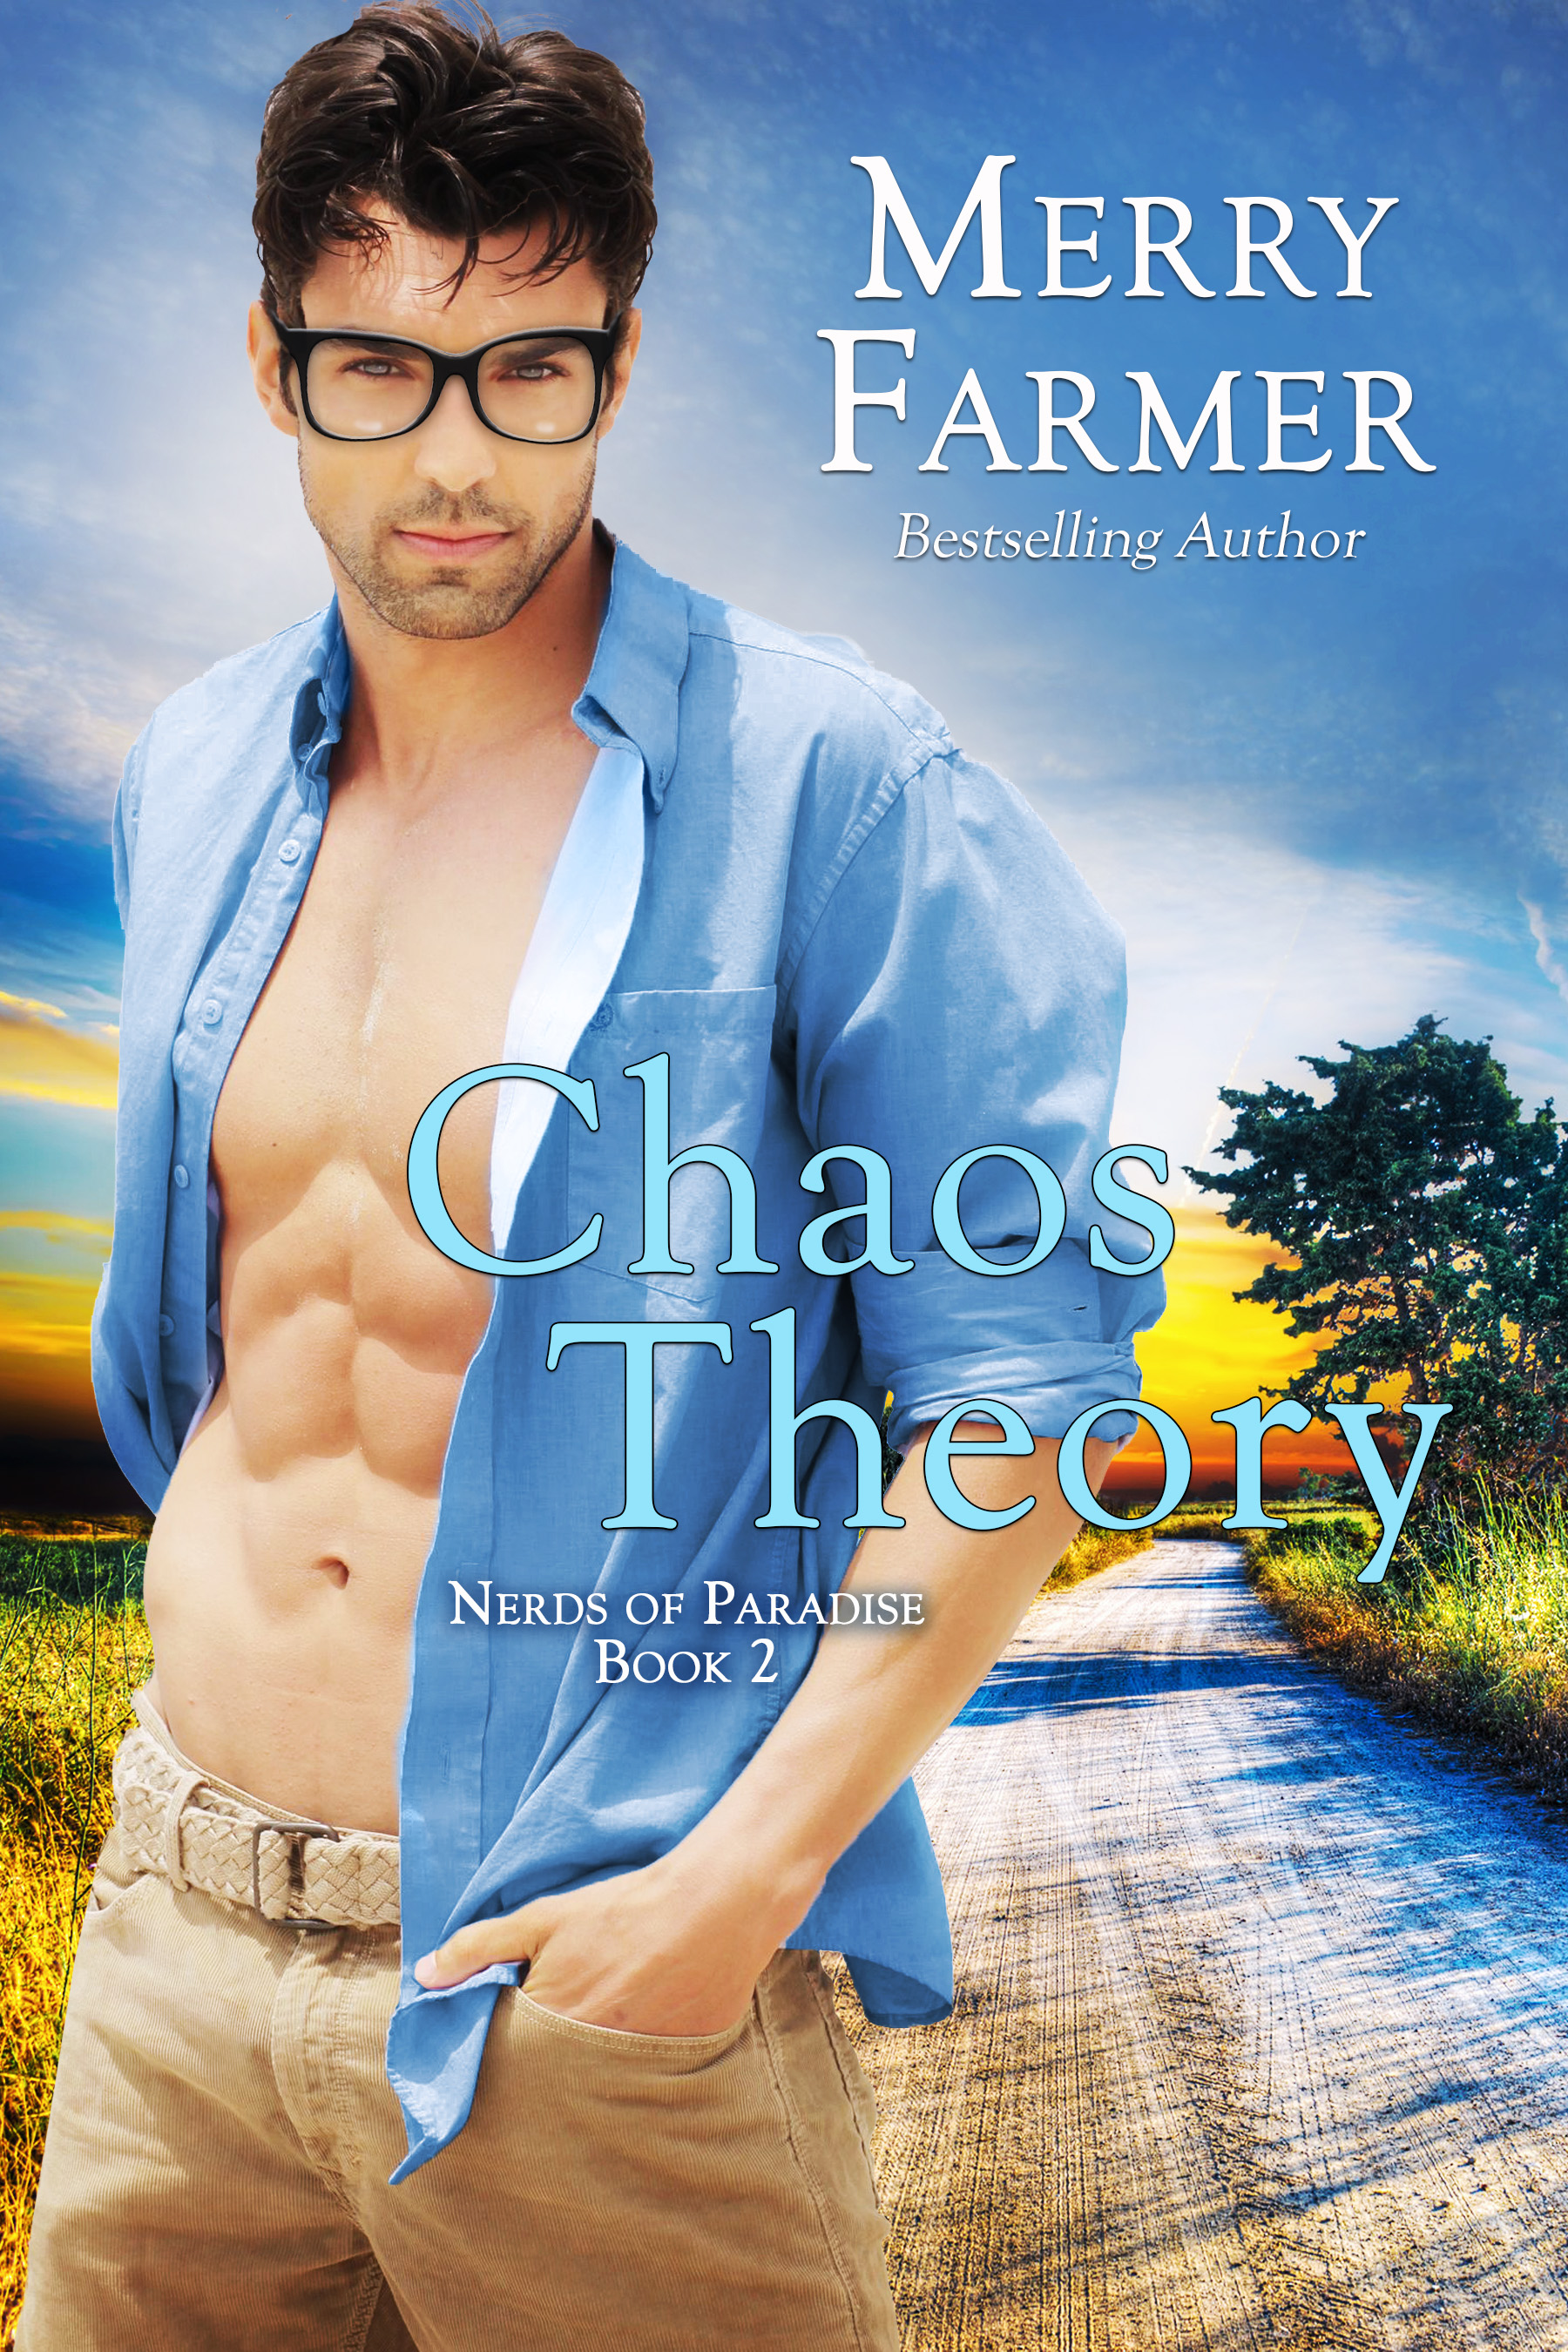 Chaos Theory (Book 2) - Melody Clutterbuck has her eyes on the prize, and that prize is handsome, uptight engineer, Will Darling. As part-owner of the local flower shop, people expect her notoriously sunny disposition and esoteric way of doing things to shine, but when the town gets wrapped up in an orienteering competition, Melody's competitive nature comes out. She plans to win both the wilderness event and the man, and nothing will get in her way. Not even Wil himself.Will Darling is nothing if not a fierce competitor. He is focused, determined, and driven. So when he finds himself falling for Melody and her chaotic, flighty, sexy ways, it seriously threatens his regimented world. And when they're paired together for the orienteering competition and dropped into the middle of the Shoshone National Forest alone, more than one kind of sparks fly.Can Will hold onto his organized world or will the fire between him and Melody take over and spread chaos in its wake?PLEASE BE ADVISED: Steam Level – Very Hot